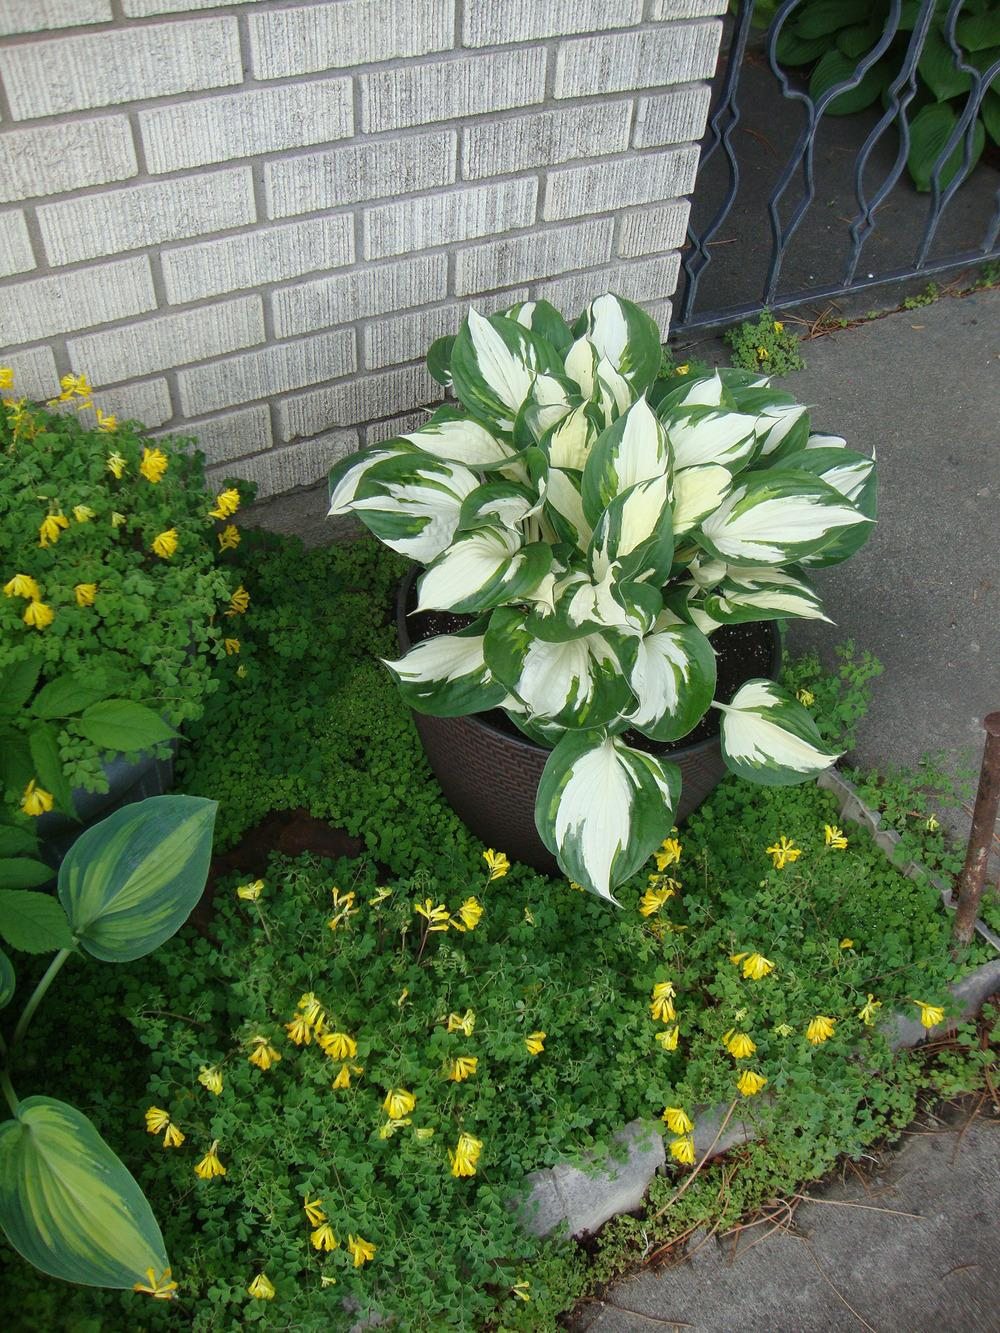 Hostas Are Wonderful in Containers - Garden.org